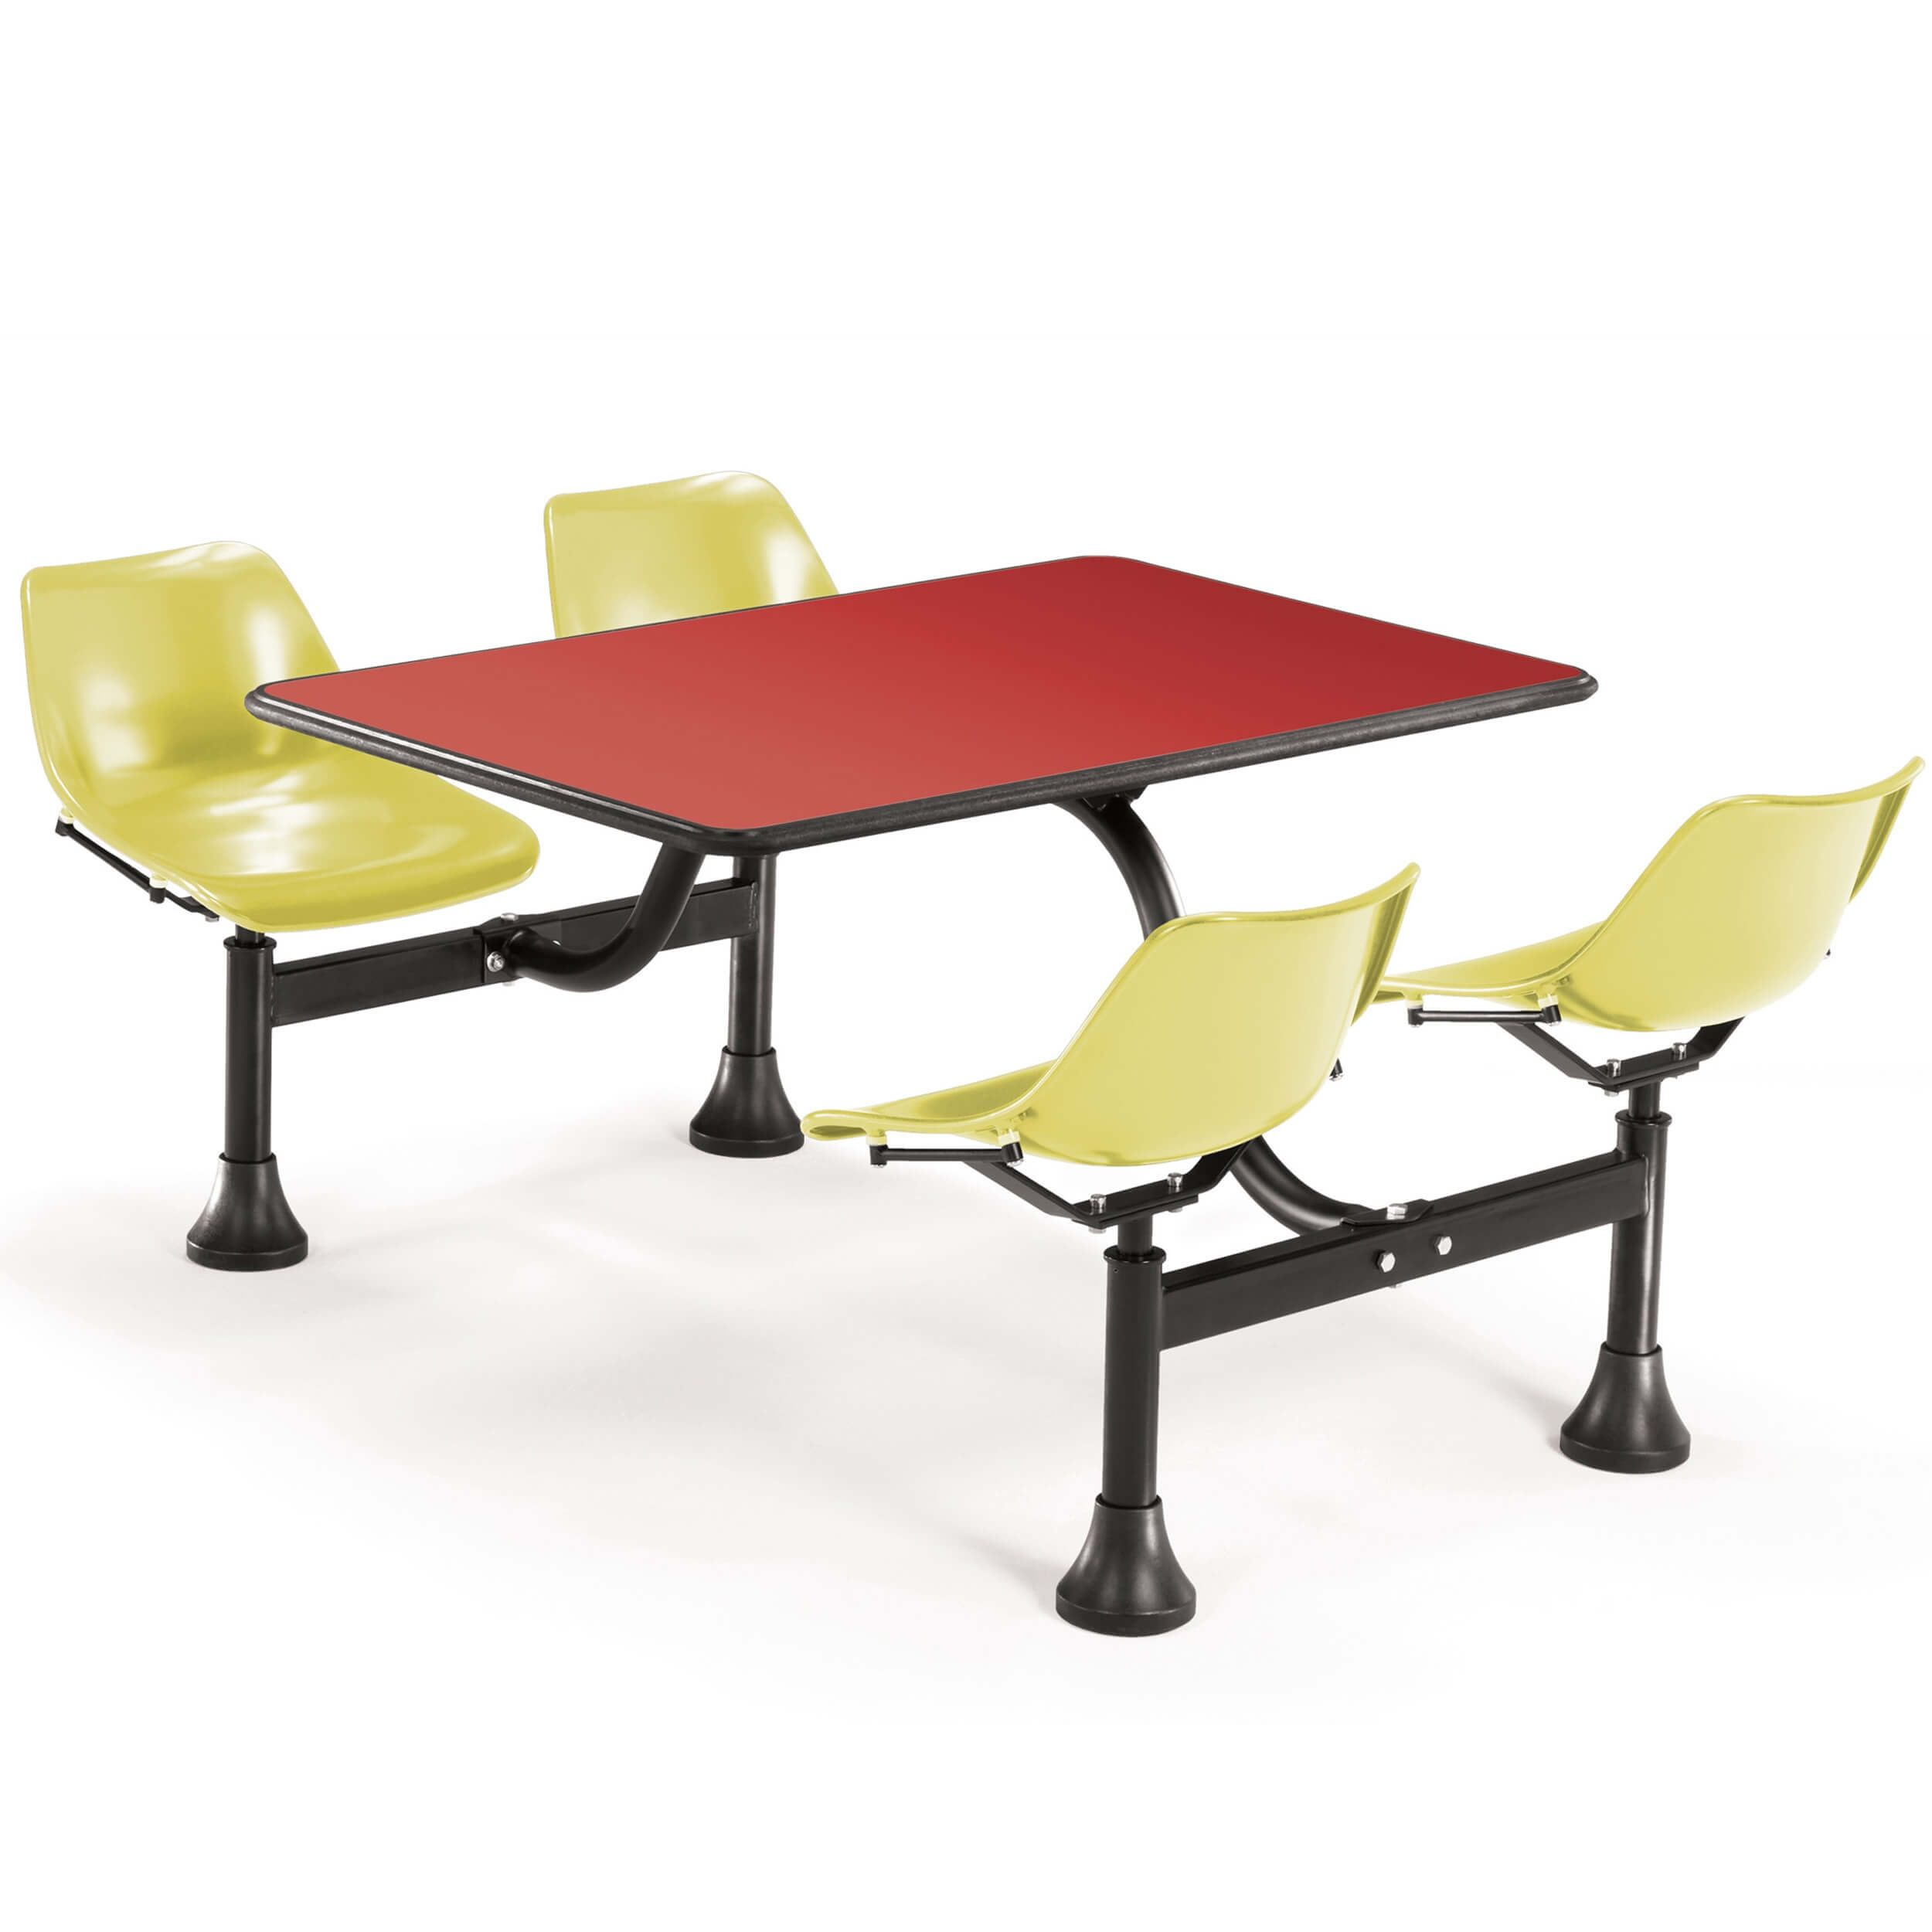 Andryx 24 X 48 Cafeteria Dining Table Cafeteria Table Restaurant Tables And Chairs Table